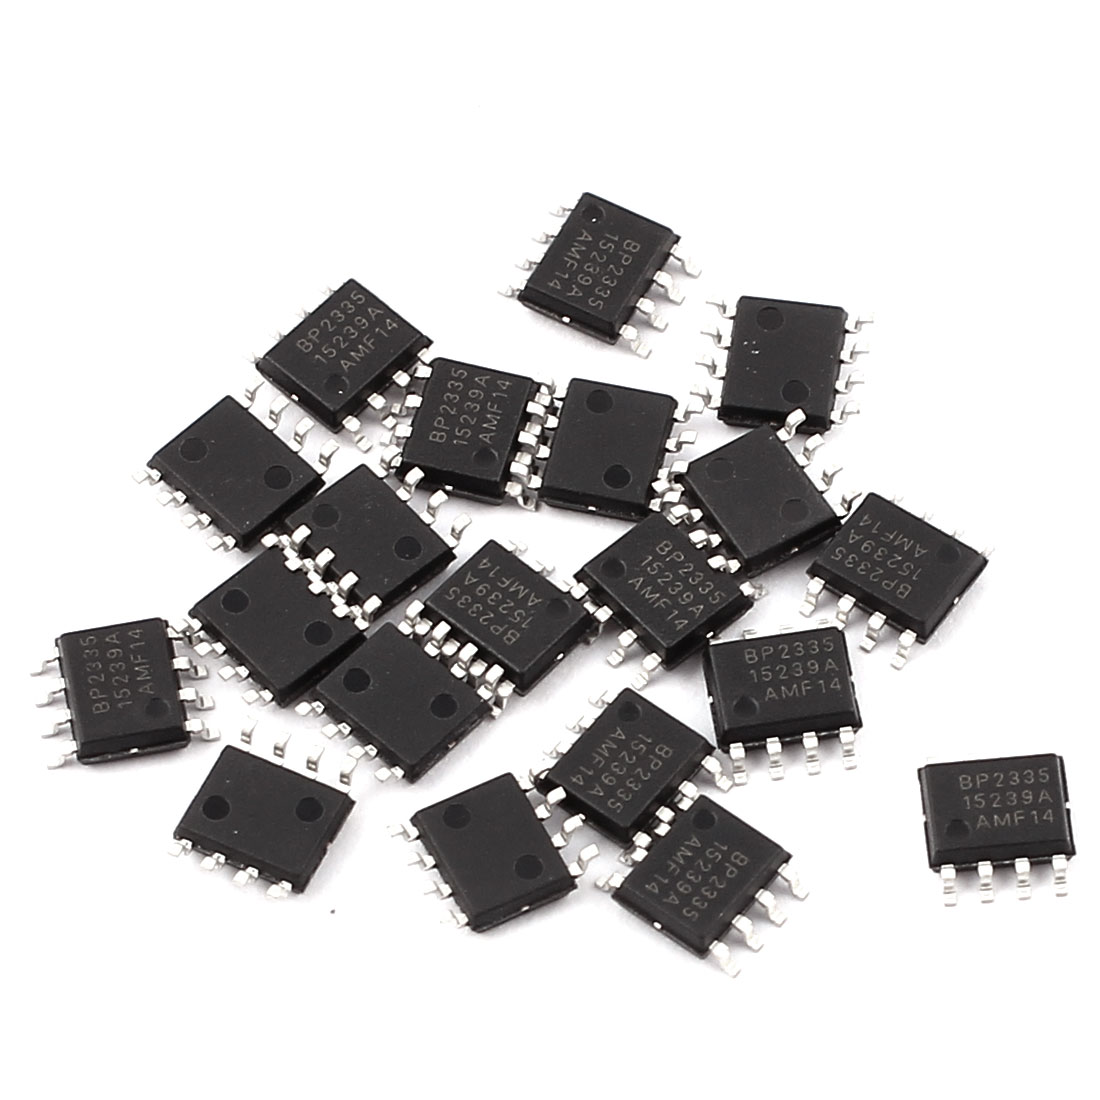 20Pcs BP2335 SOP-8 SMD SMT Type PCB Surface Mount LED Driver Circuit Module Integrated Circuit IC Chip